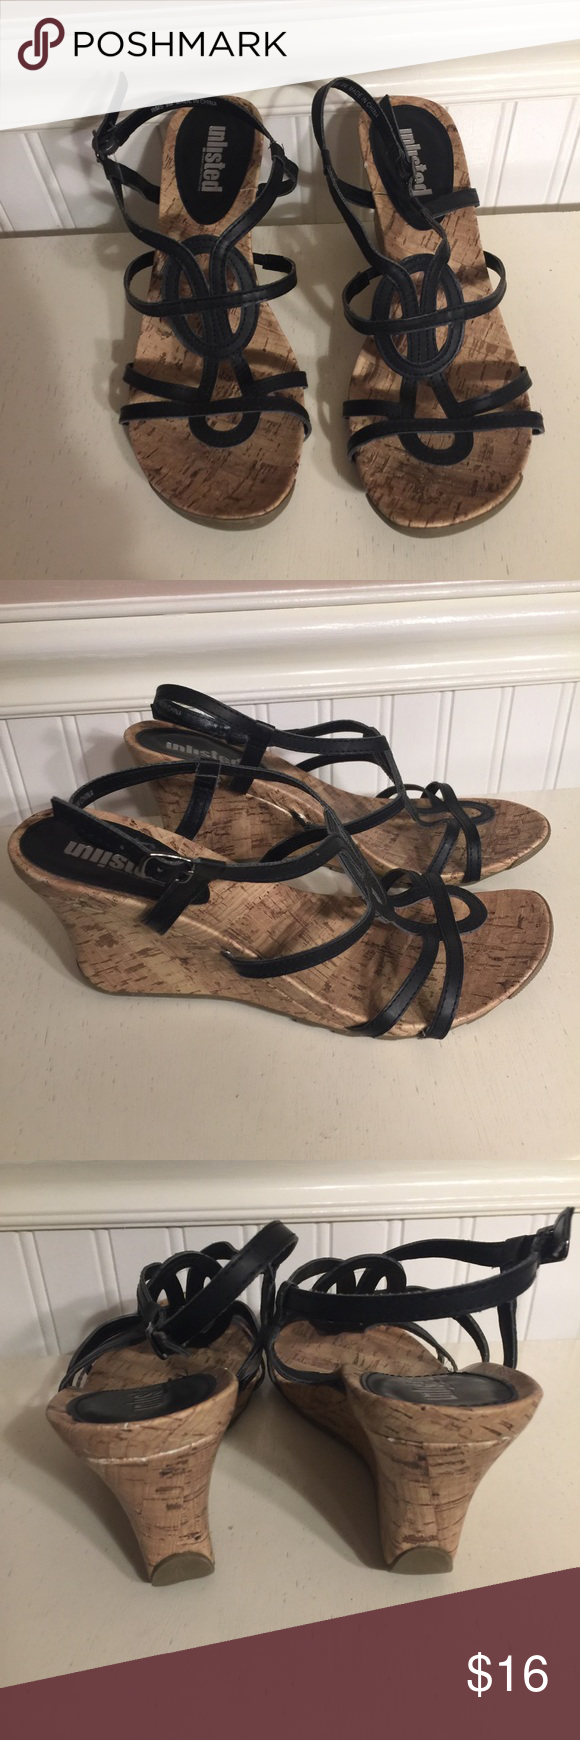 Black wedged Only worn once, wedge measures 3 1/2 inches, comfortable and durable for s night out, comes from a smoke/ pet free home ✅FAST SHIPPING✅ Unlisted Shoes Wedges